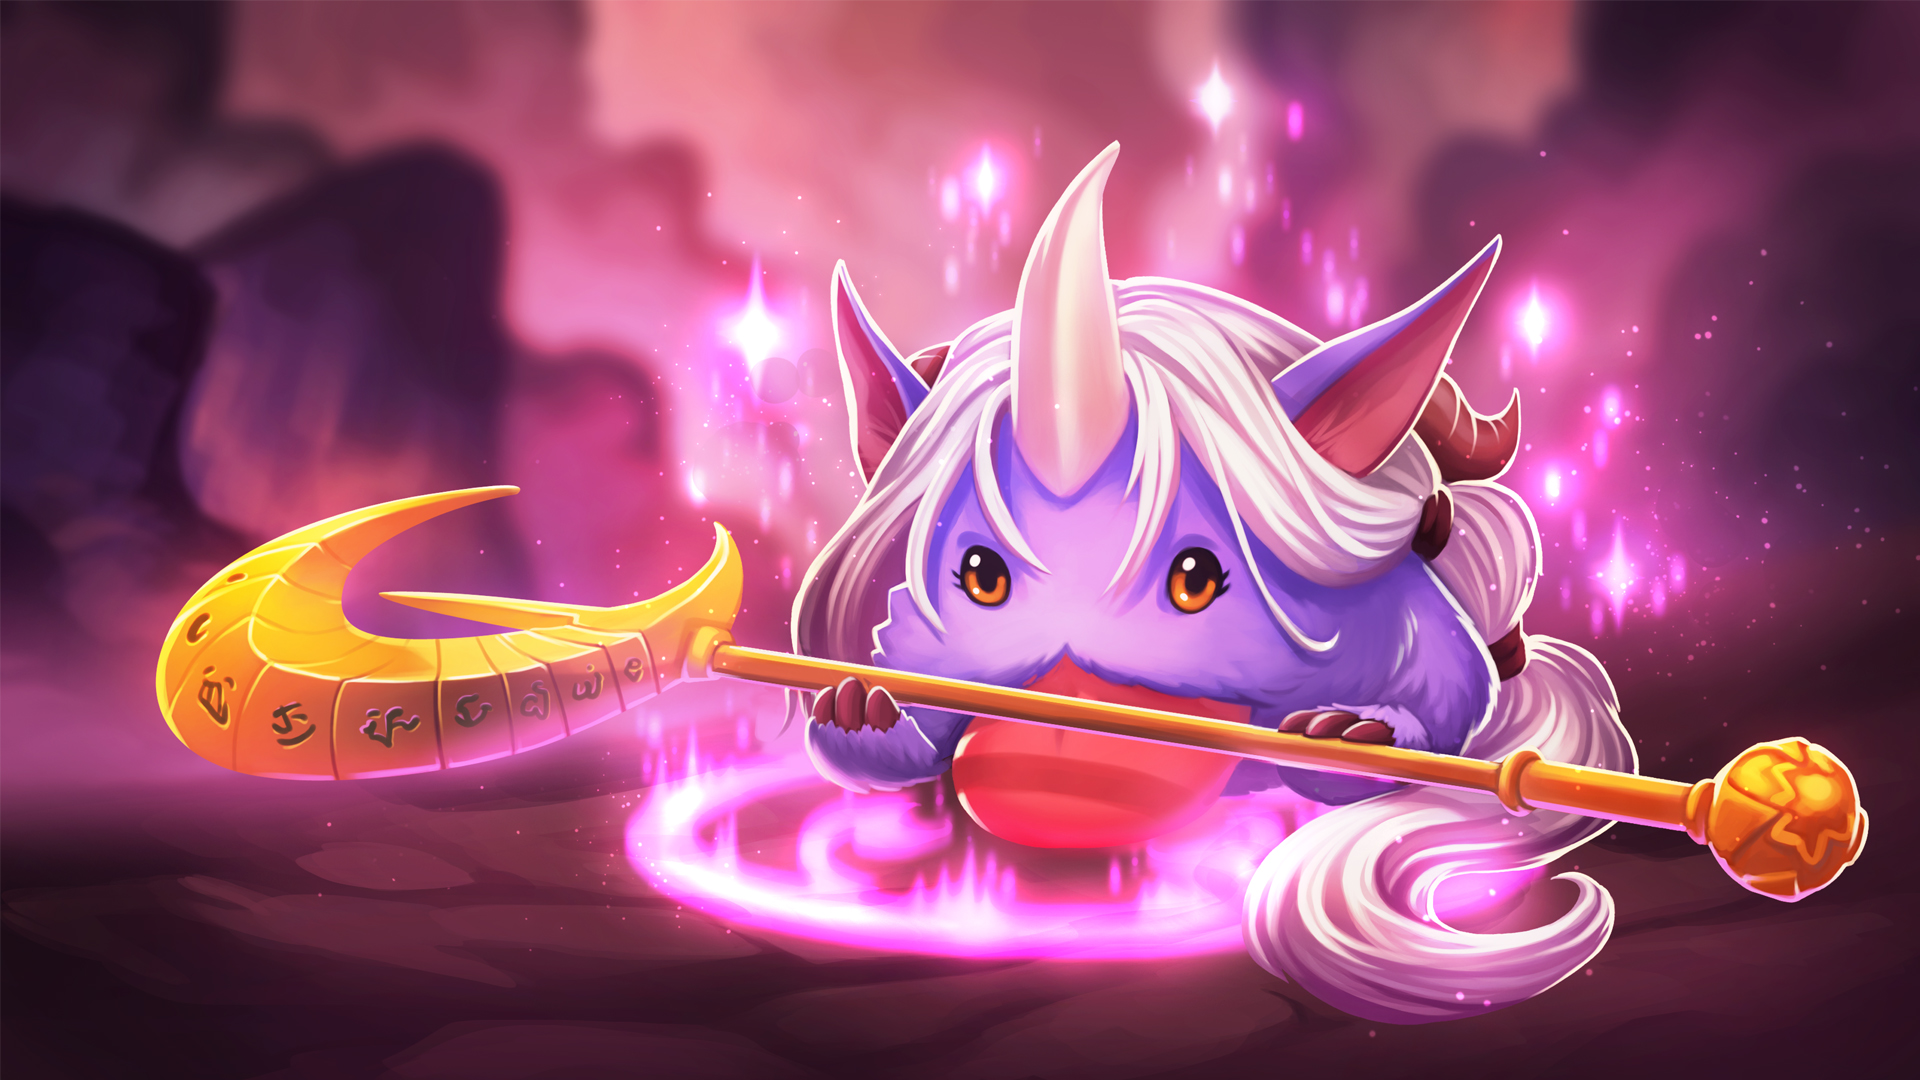 Soraka Poro wallpaper